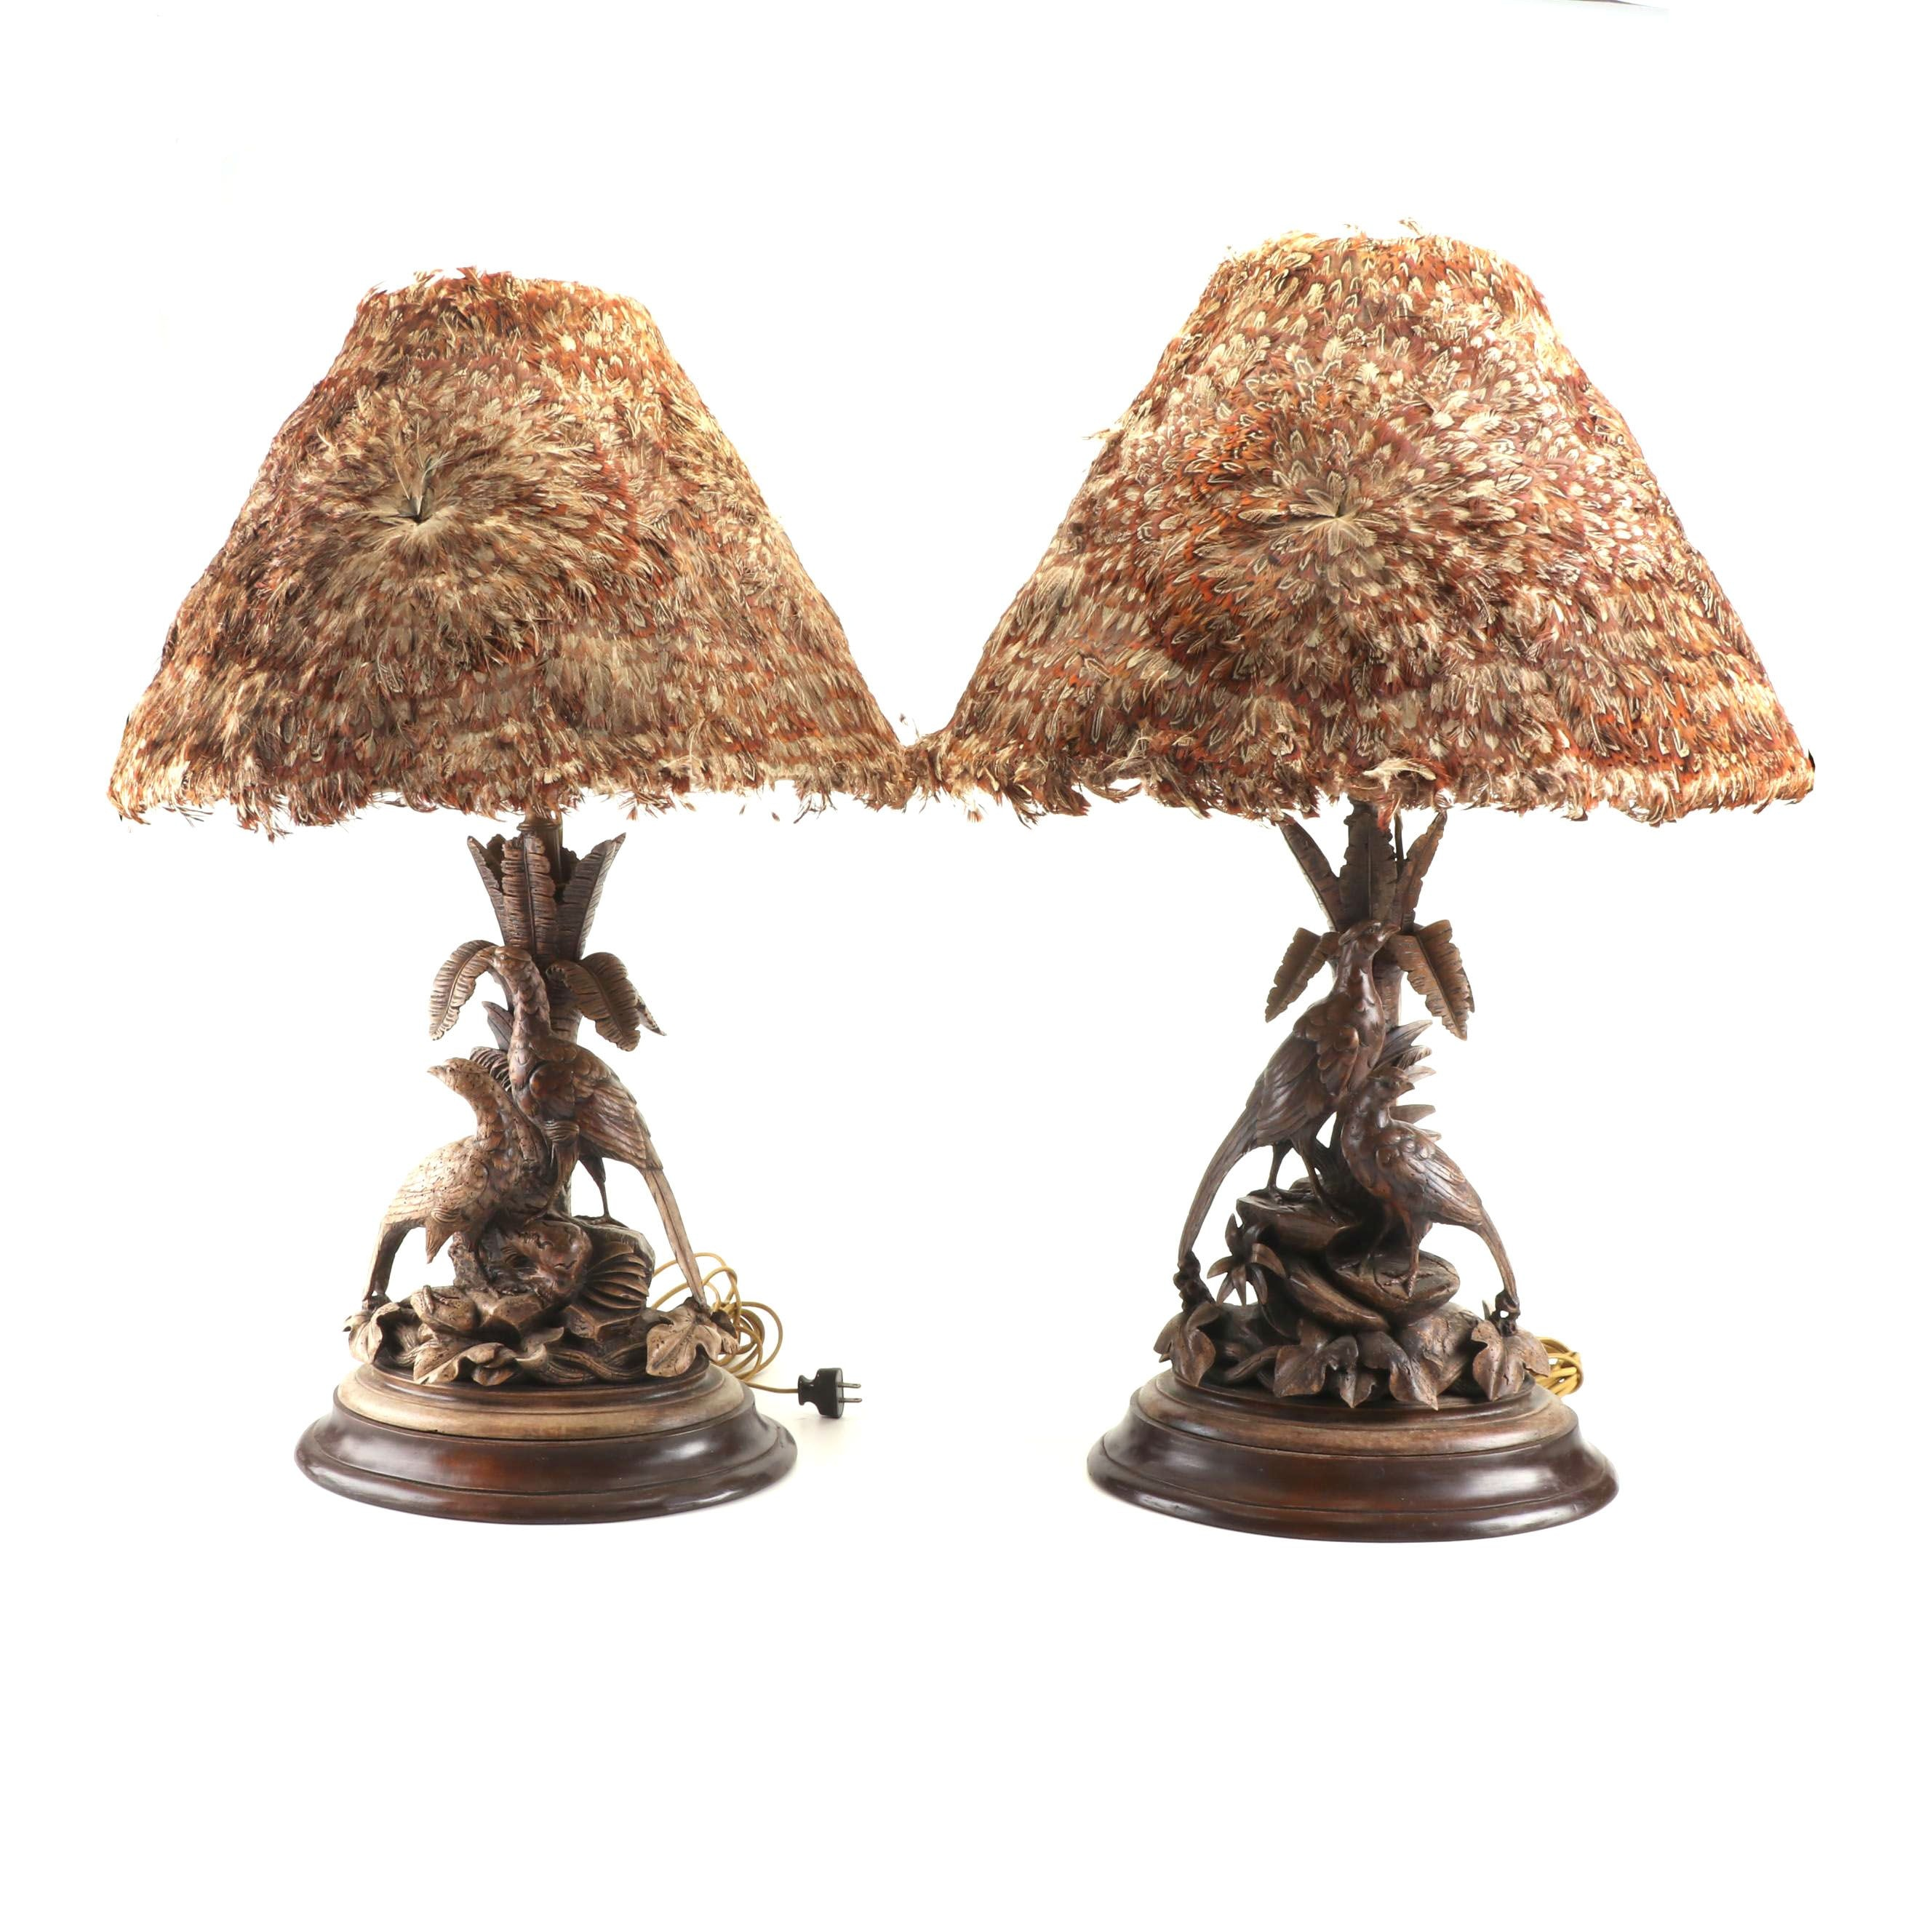 Carved Wood Table Lamps with Pheasant Feather Shades